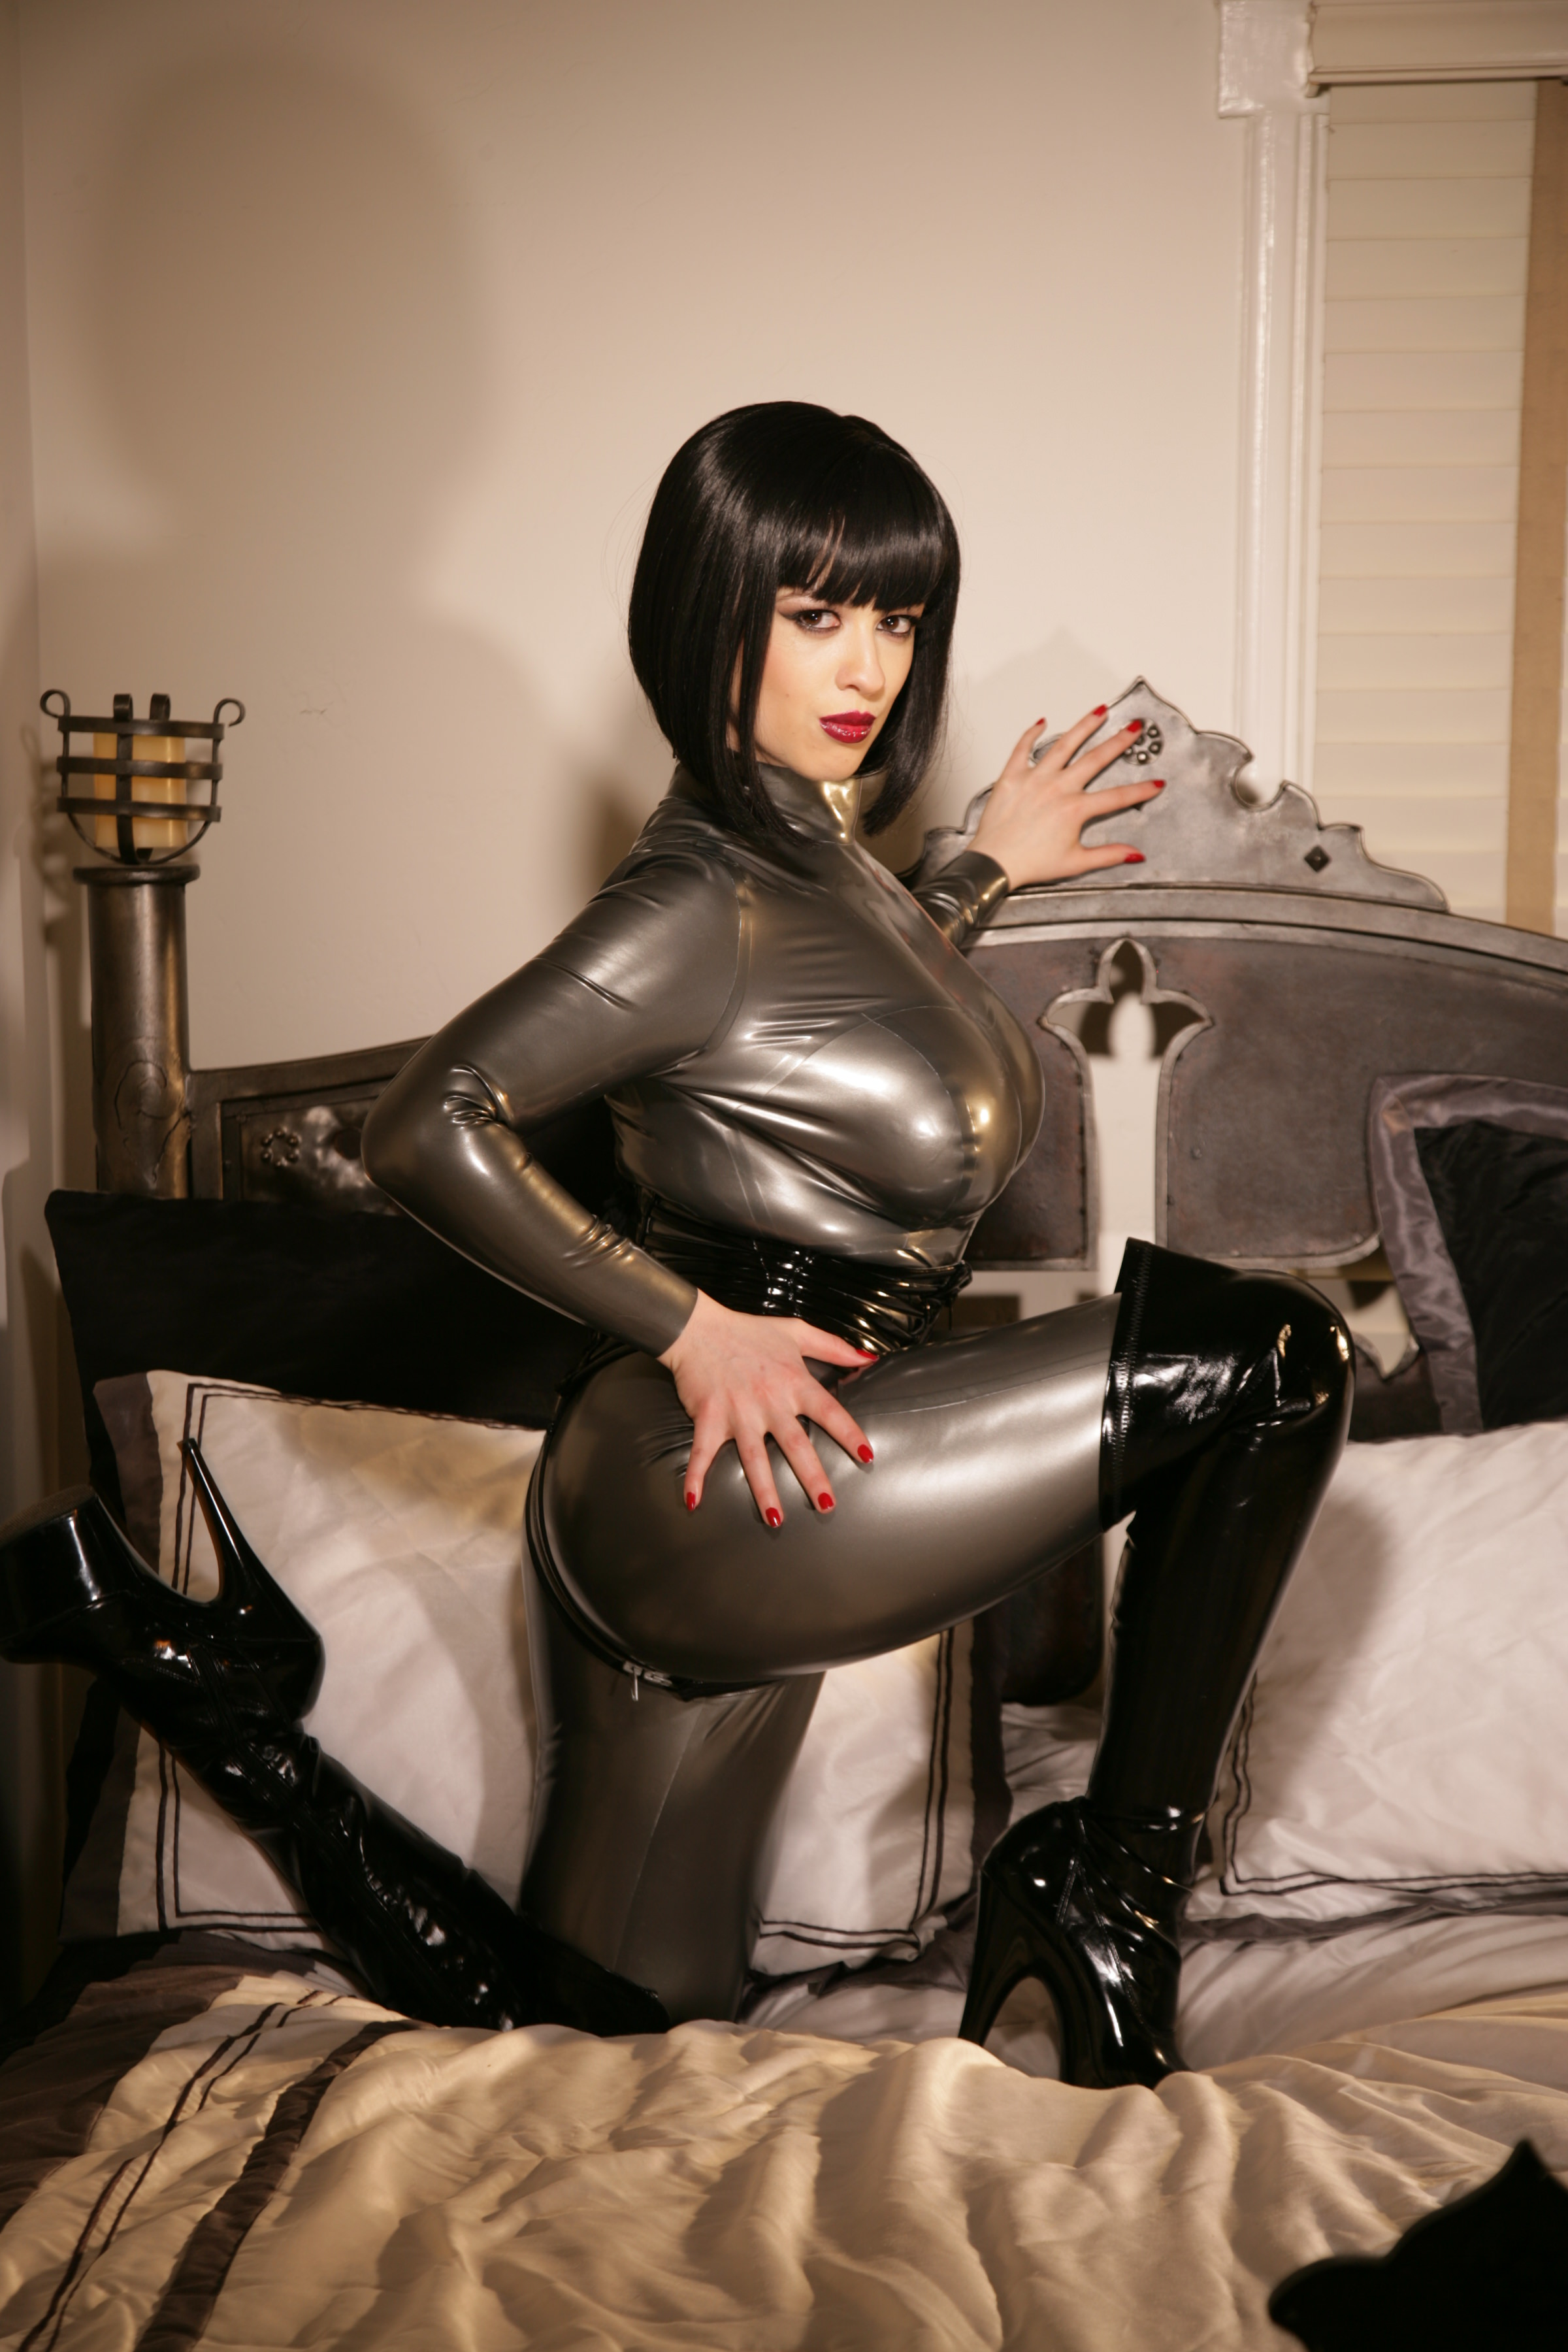 Be A Good Boy, And I'll Let You Shine My Catsuit. Queen Larkin Love In Silver Latex.